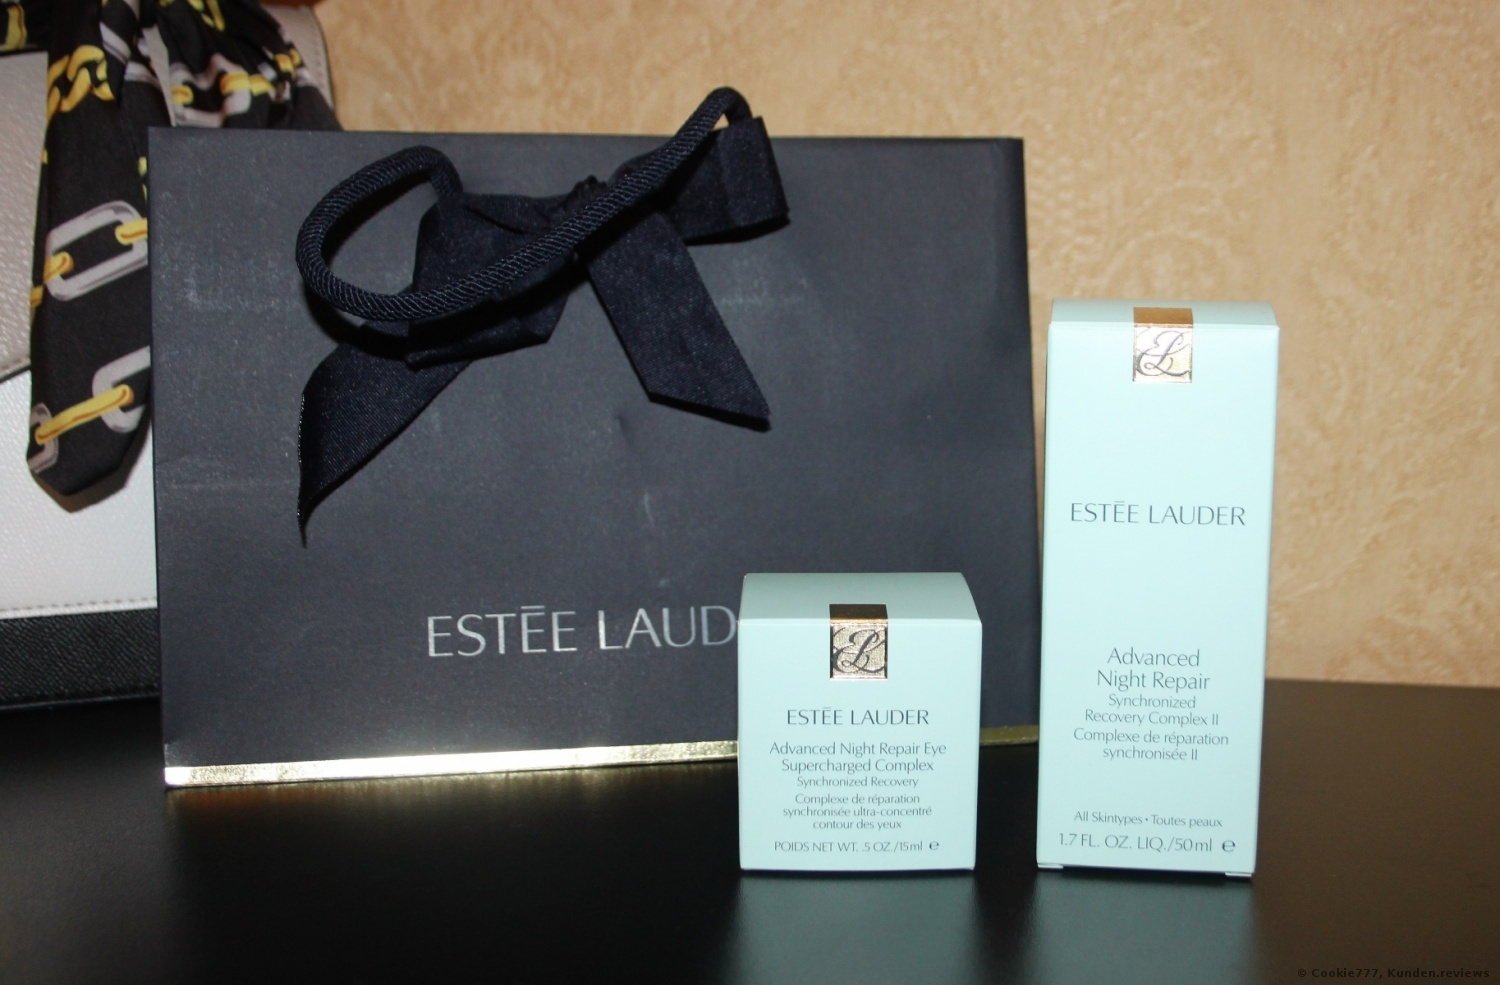 Estee Lauder Advanced Night Repair Eye Supercharged Complex Synchronized Recovery Augencreme Foto